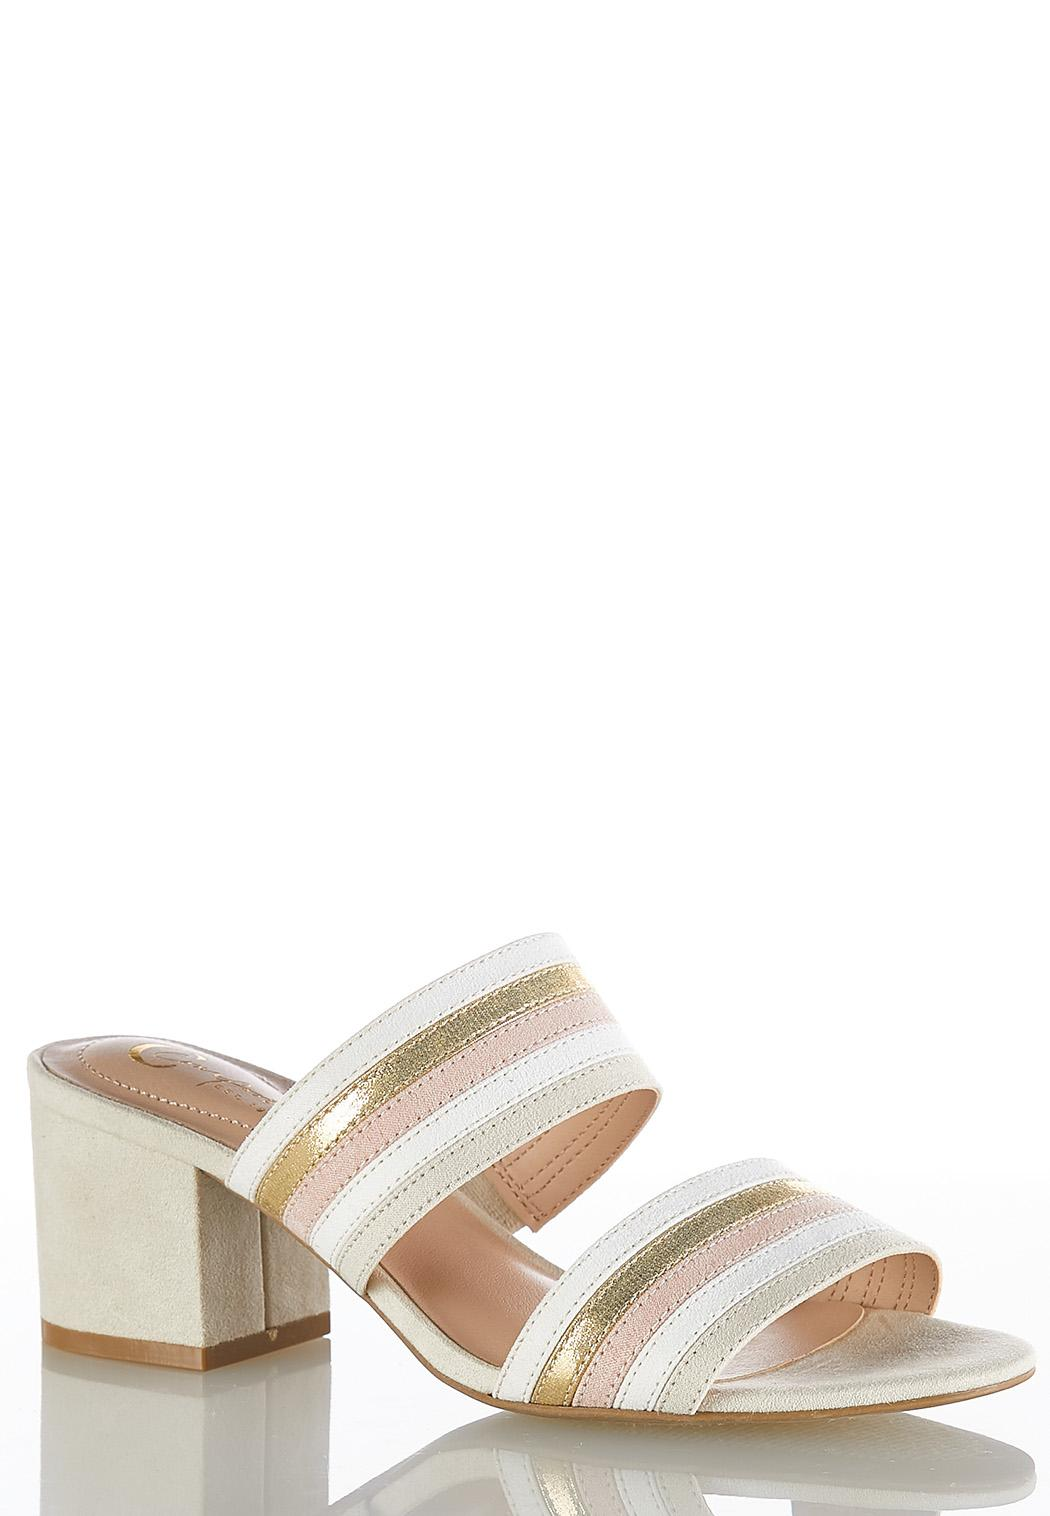 1f666e1d848 Striped Band Heeled Slides Sandals Cato Fashions